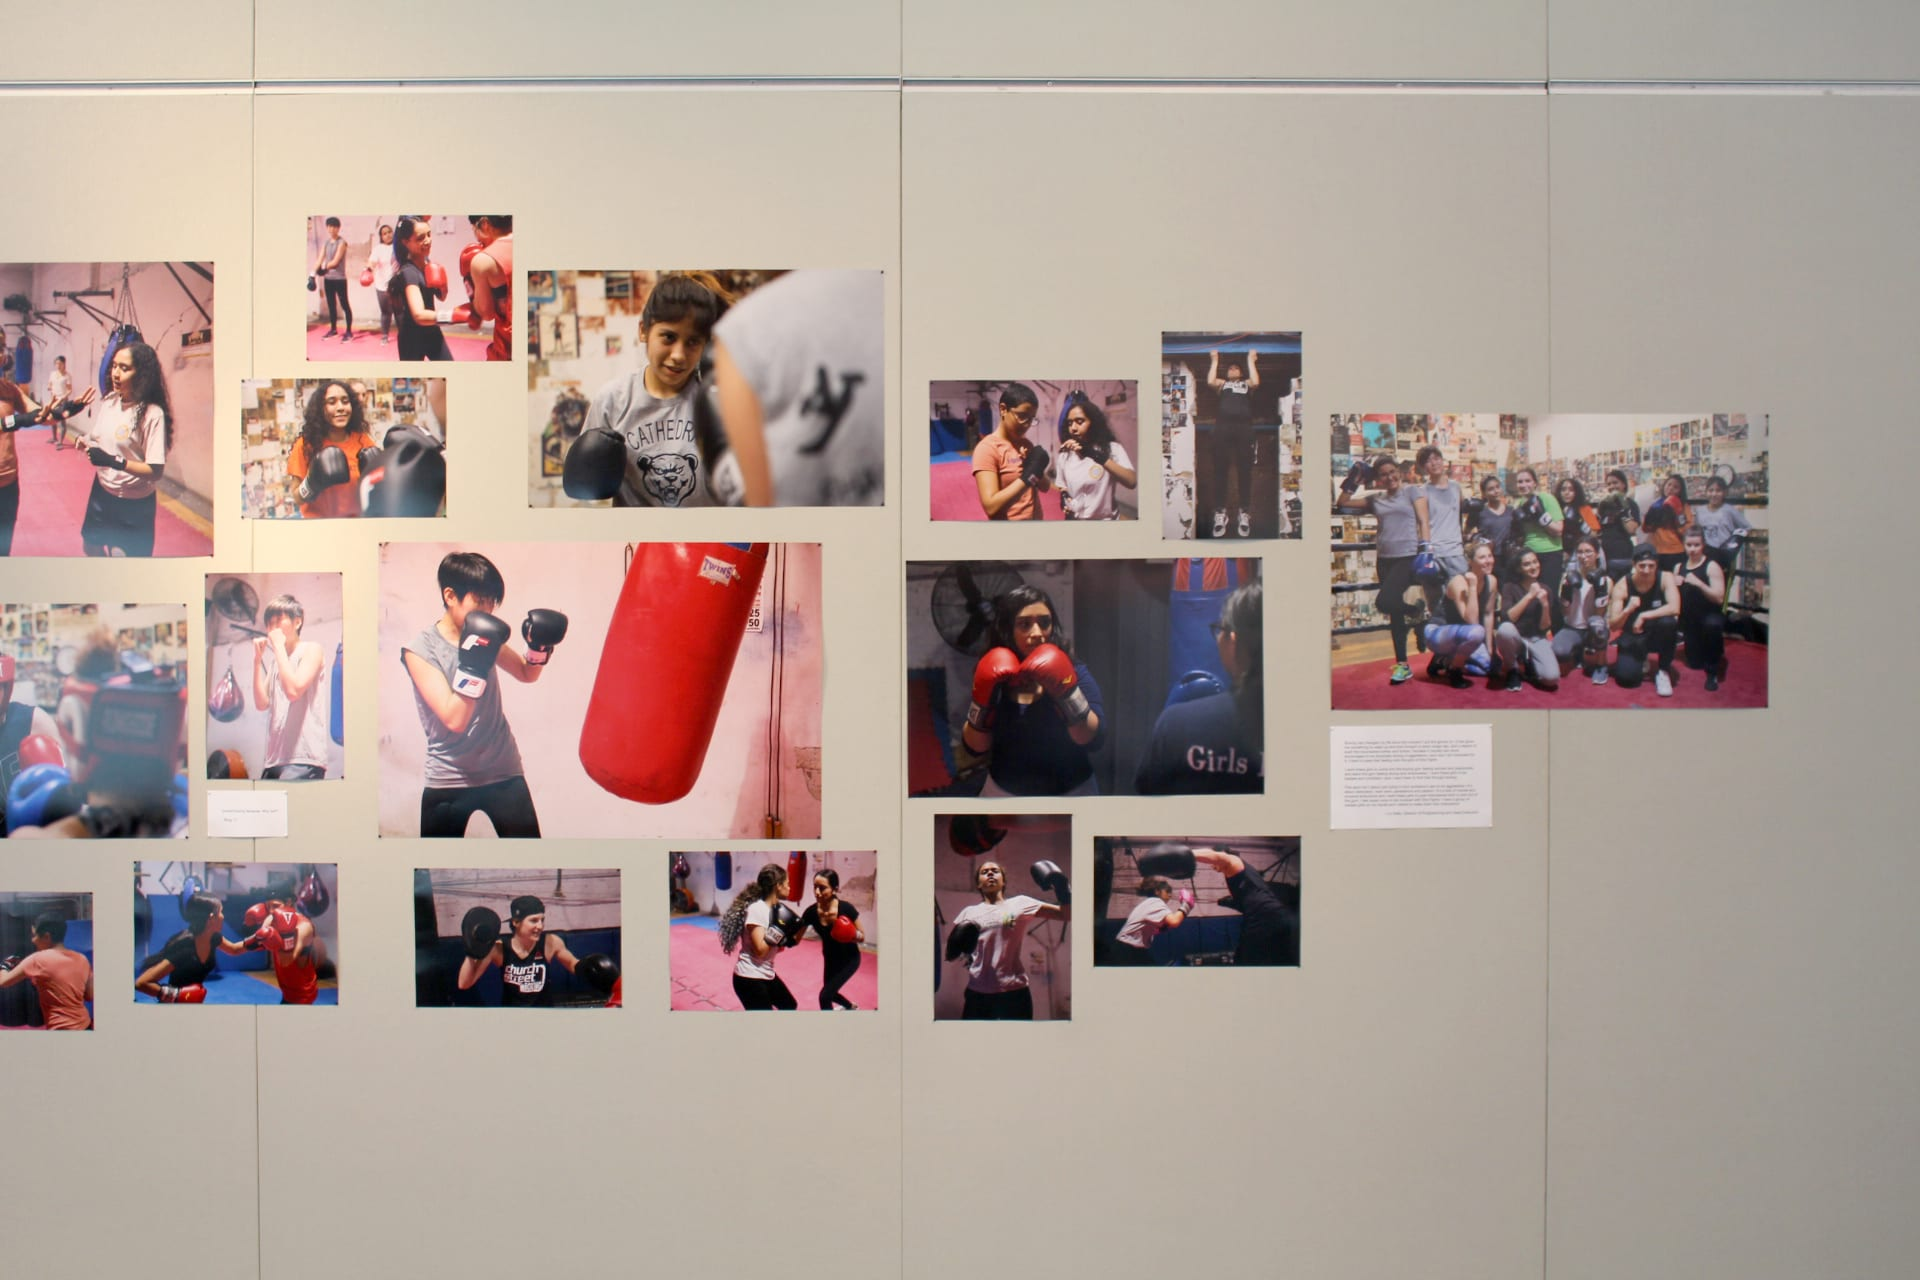 Collage of boxing photos